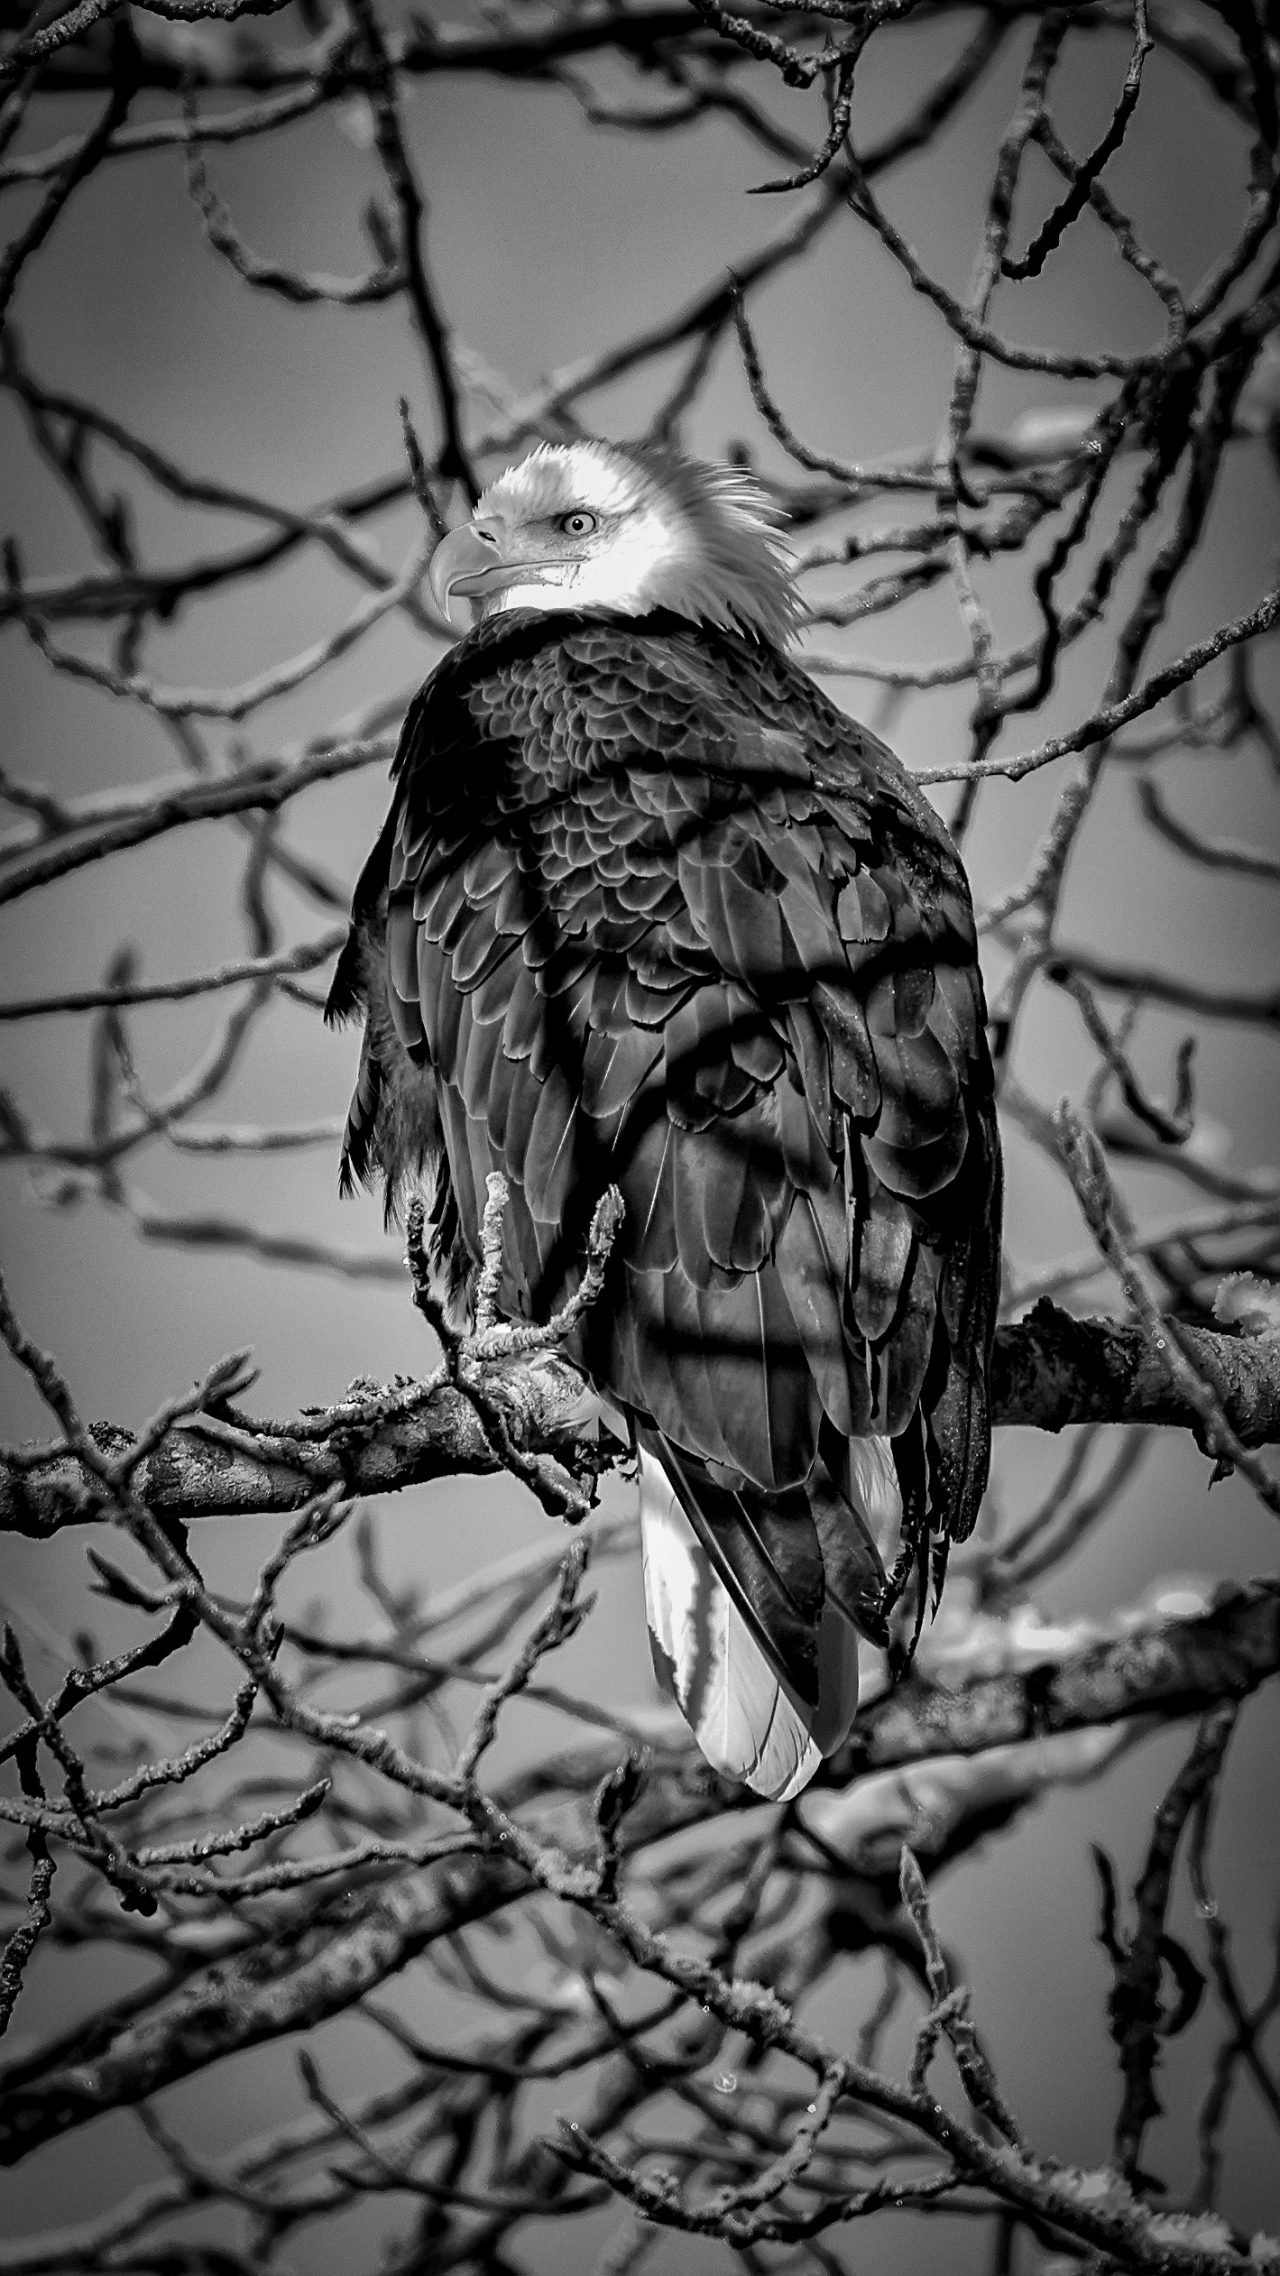 Squamish Bald Eagles : 2016-01-02 : Nikon D810 & Nikkor 200-500 : Eagle In Tree Black and White